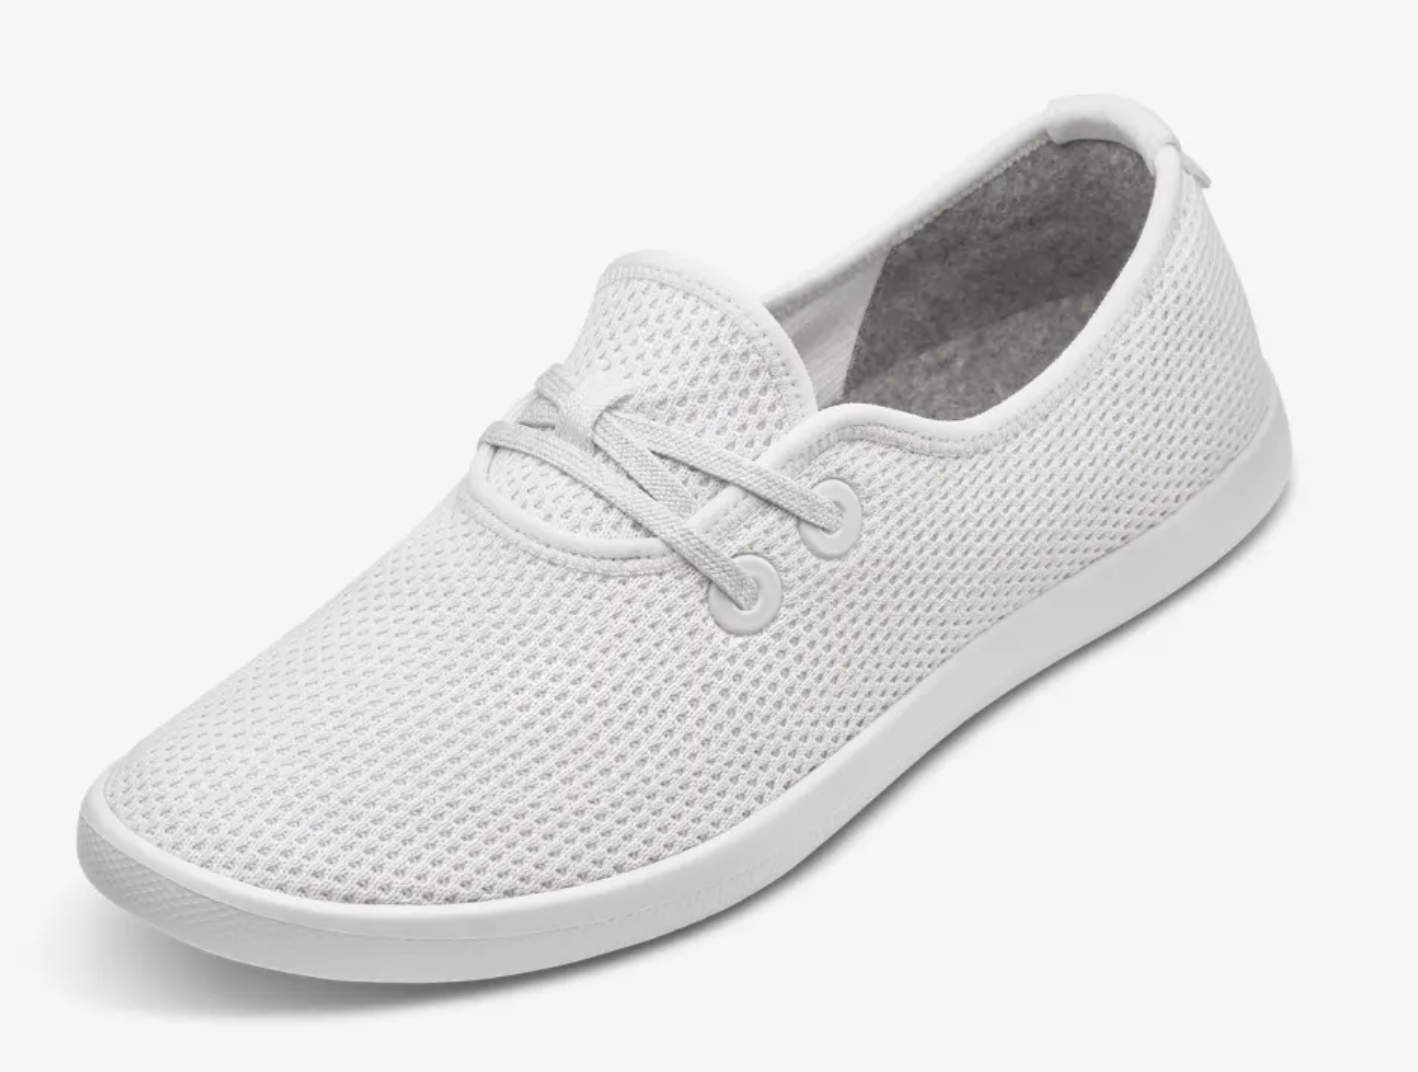 Allbirds Women's Tree Skippers